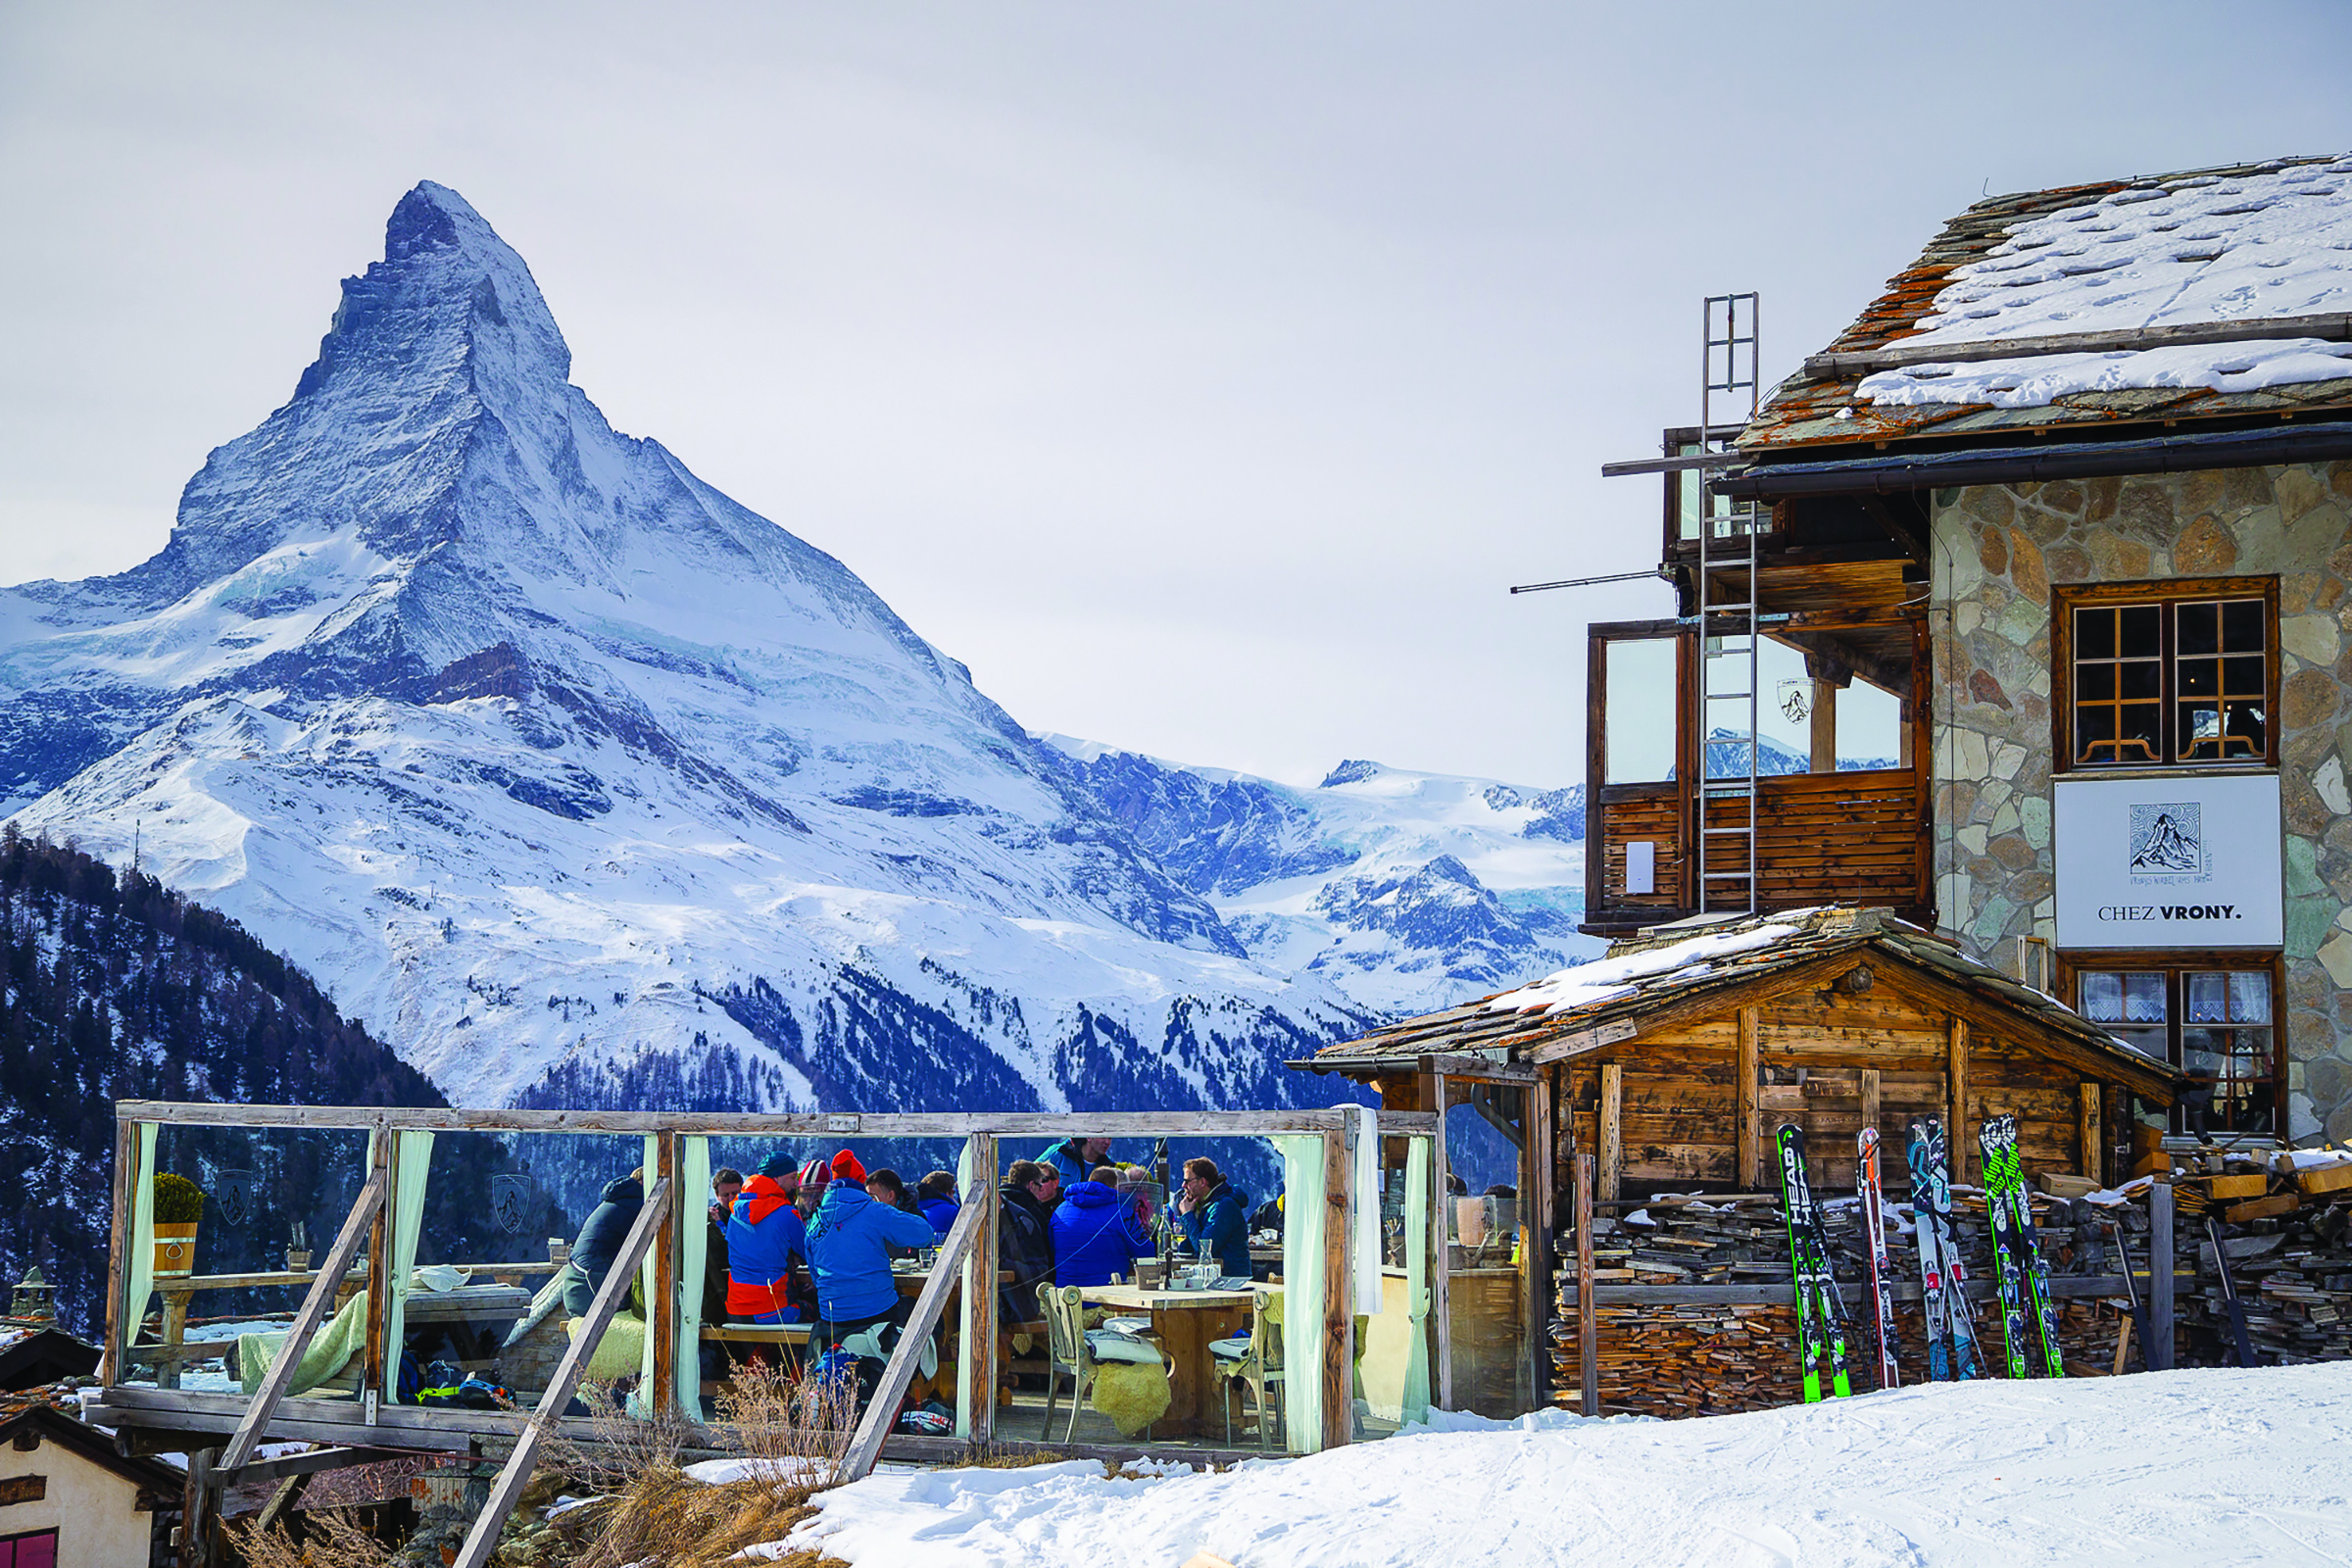 MAJESTIC MATTERHORN - Former World Cup skier experiences the posh life in Zermatt, Switzerland, under the shadow of the 'Toblerone Mountain'By Larisa Yurkiw. Photography by Paul Morrison.